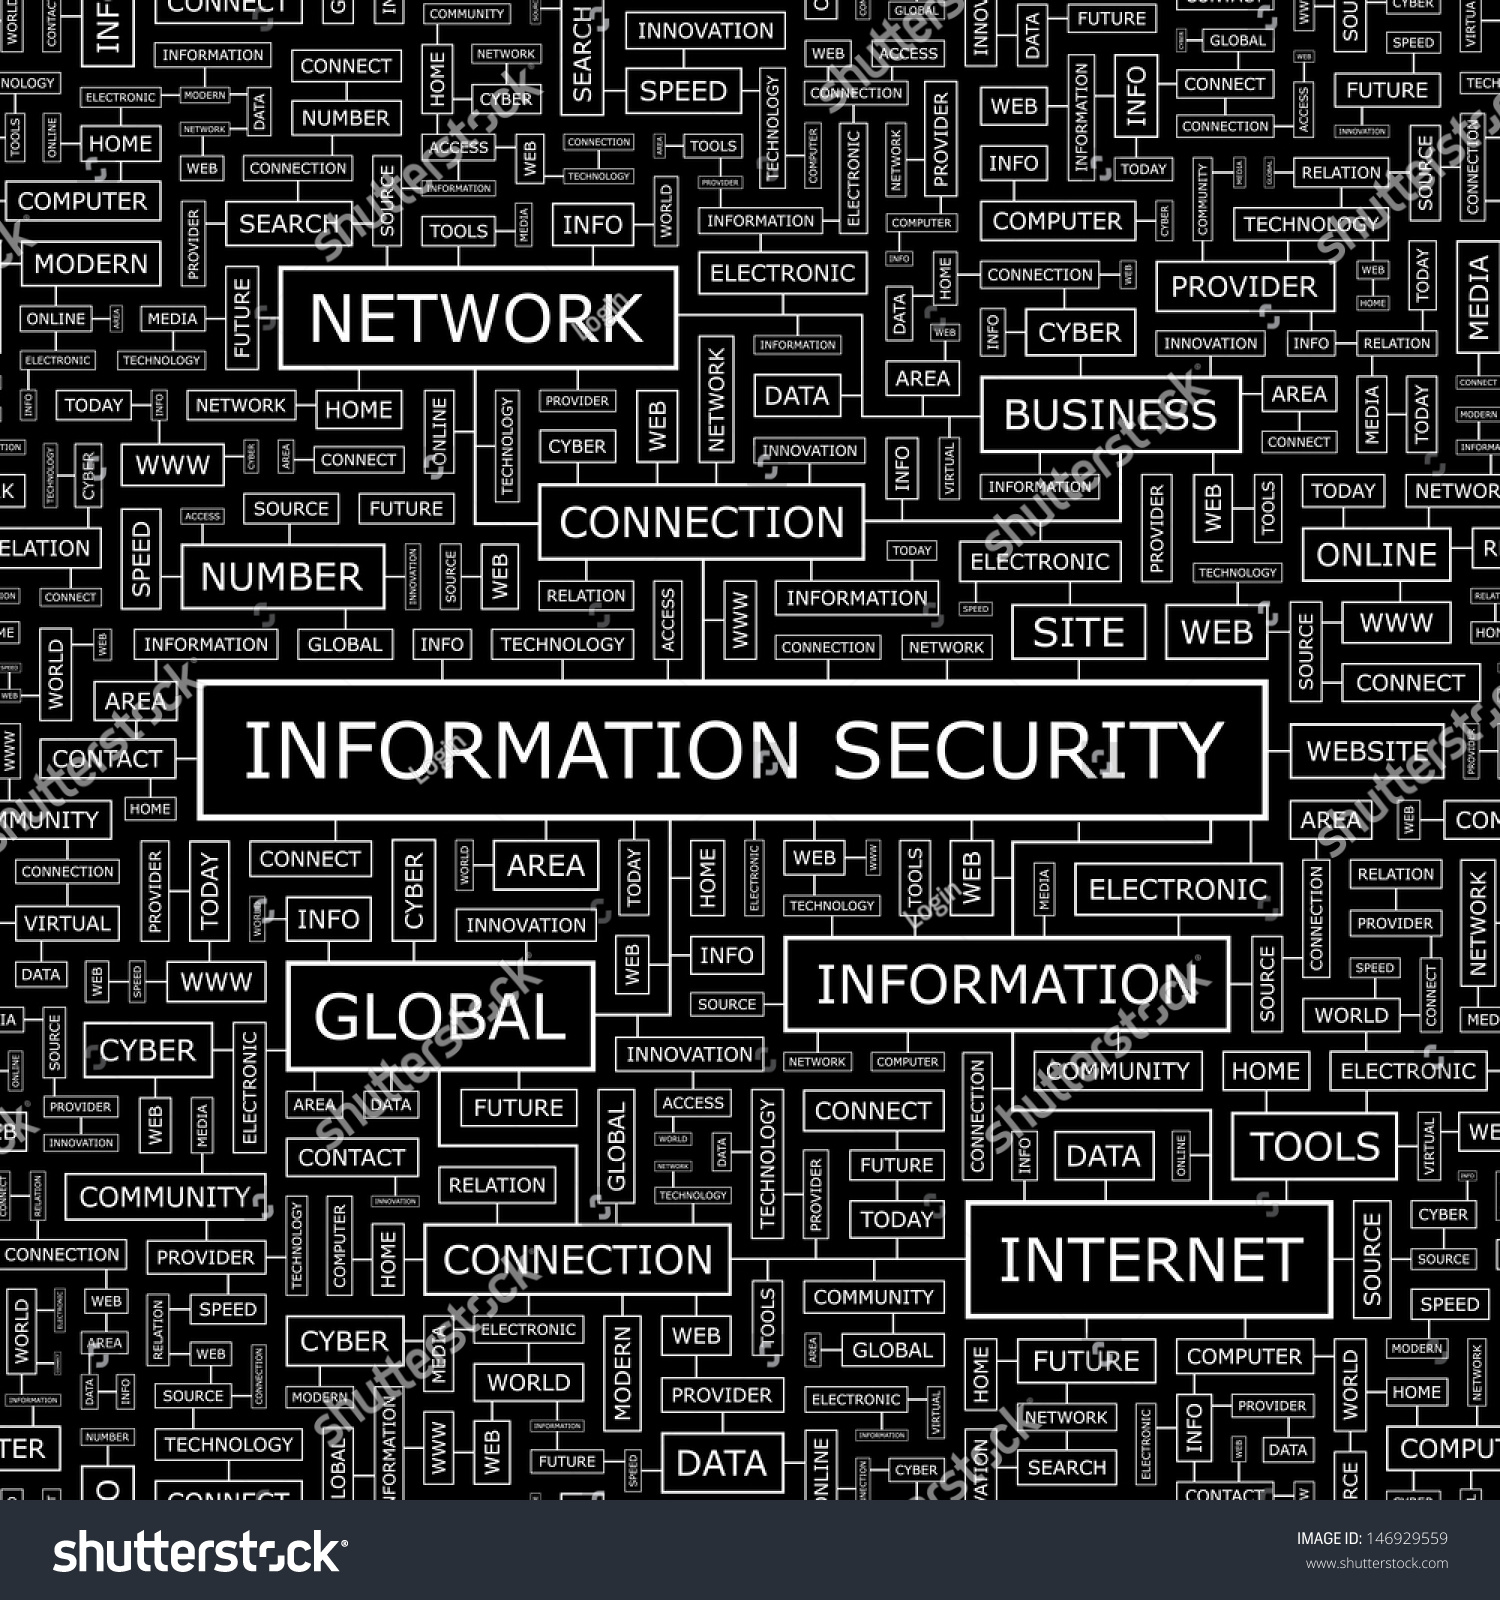 information security wallpaper - photo #7